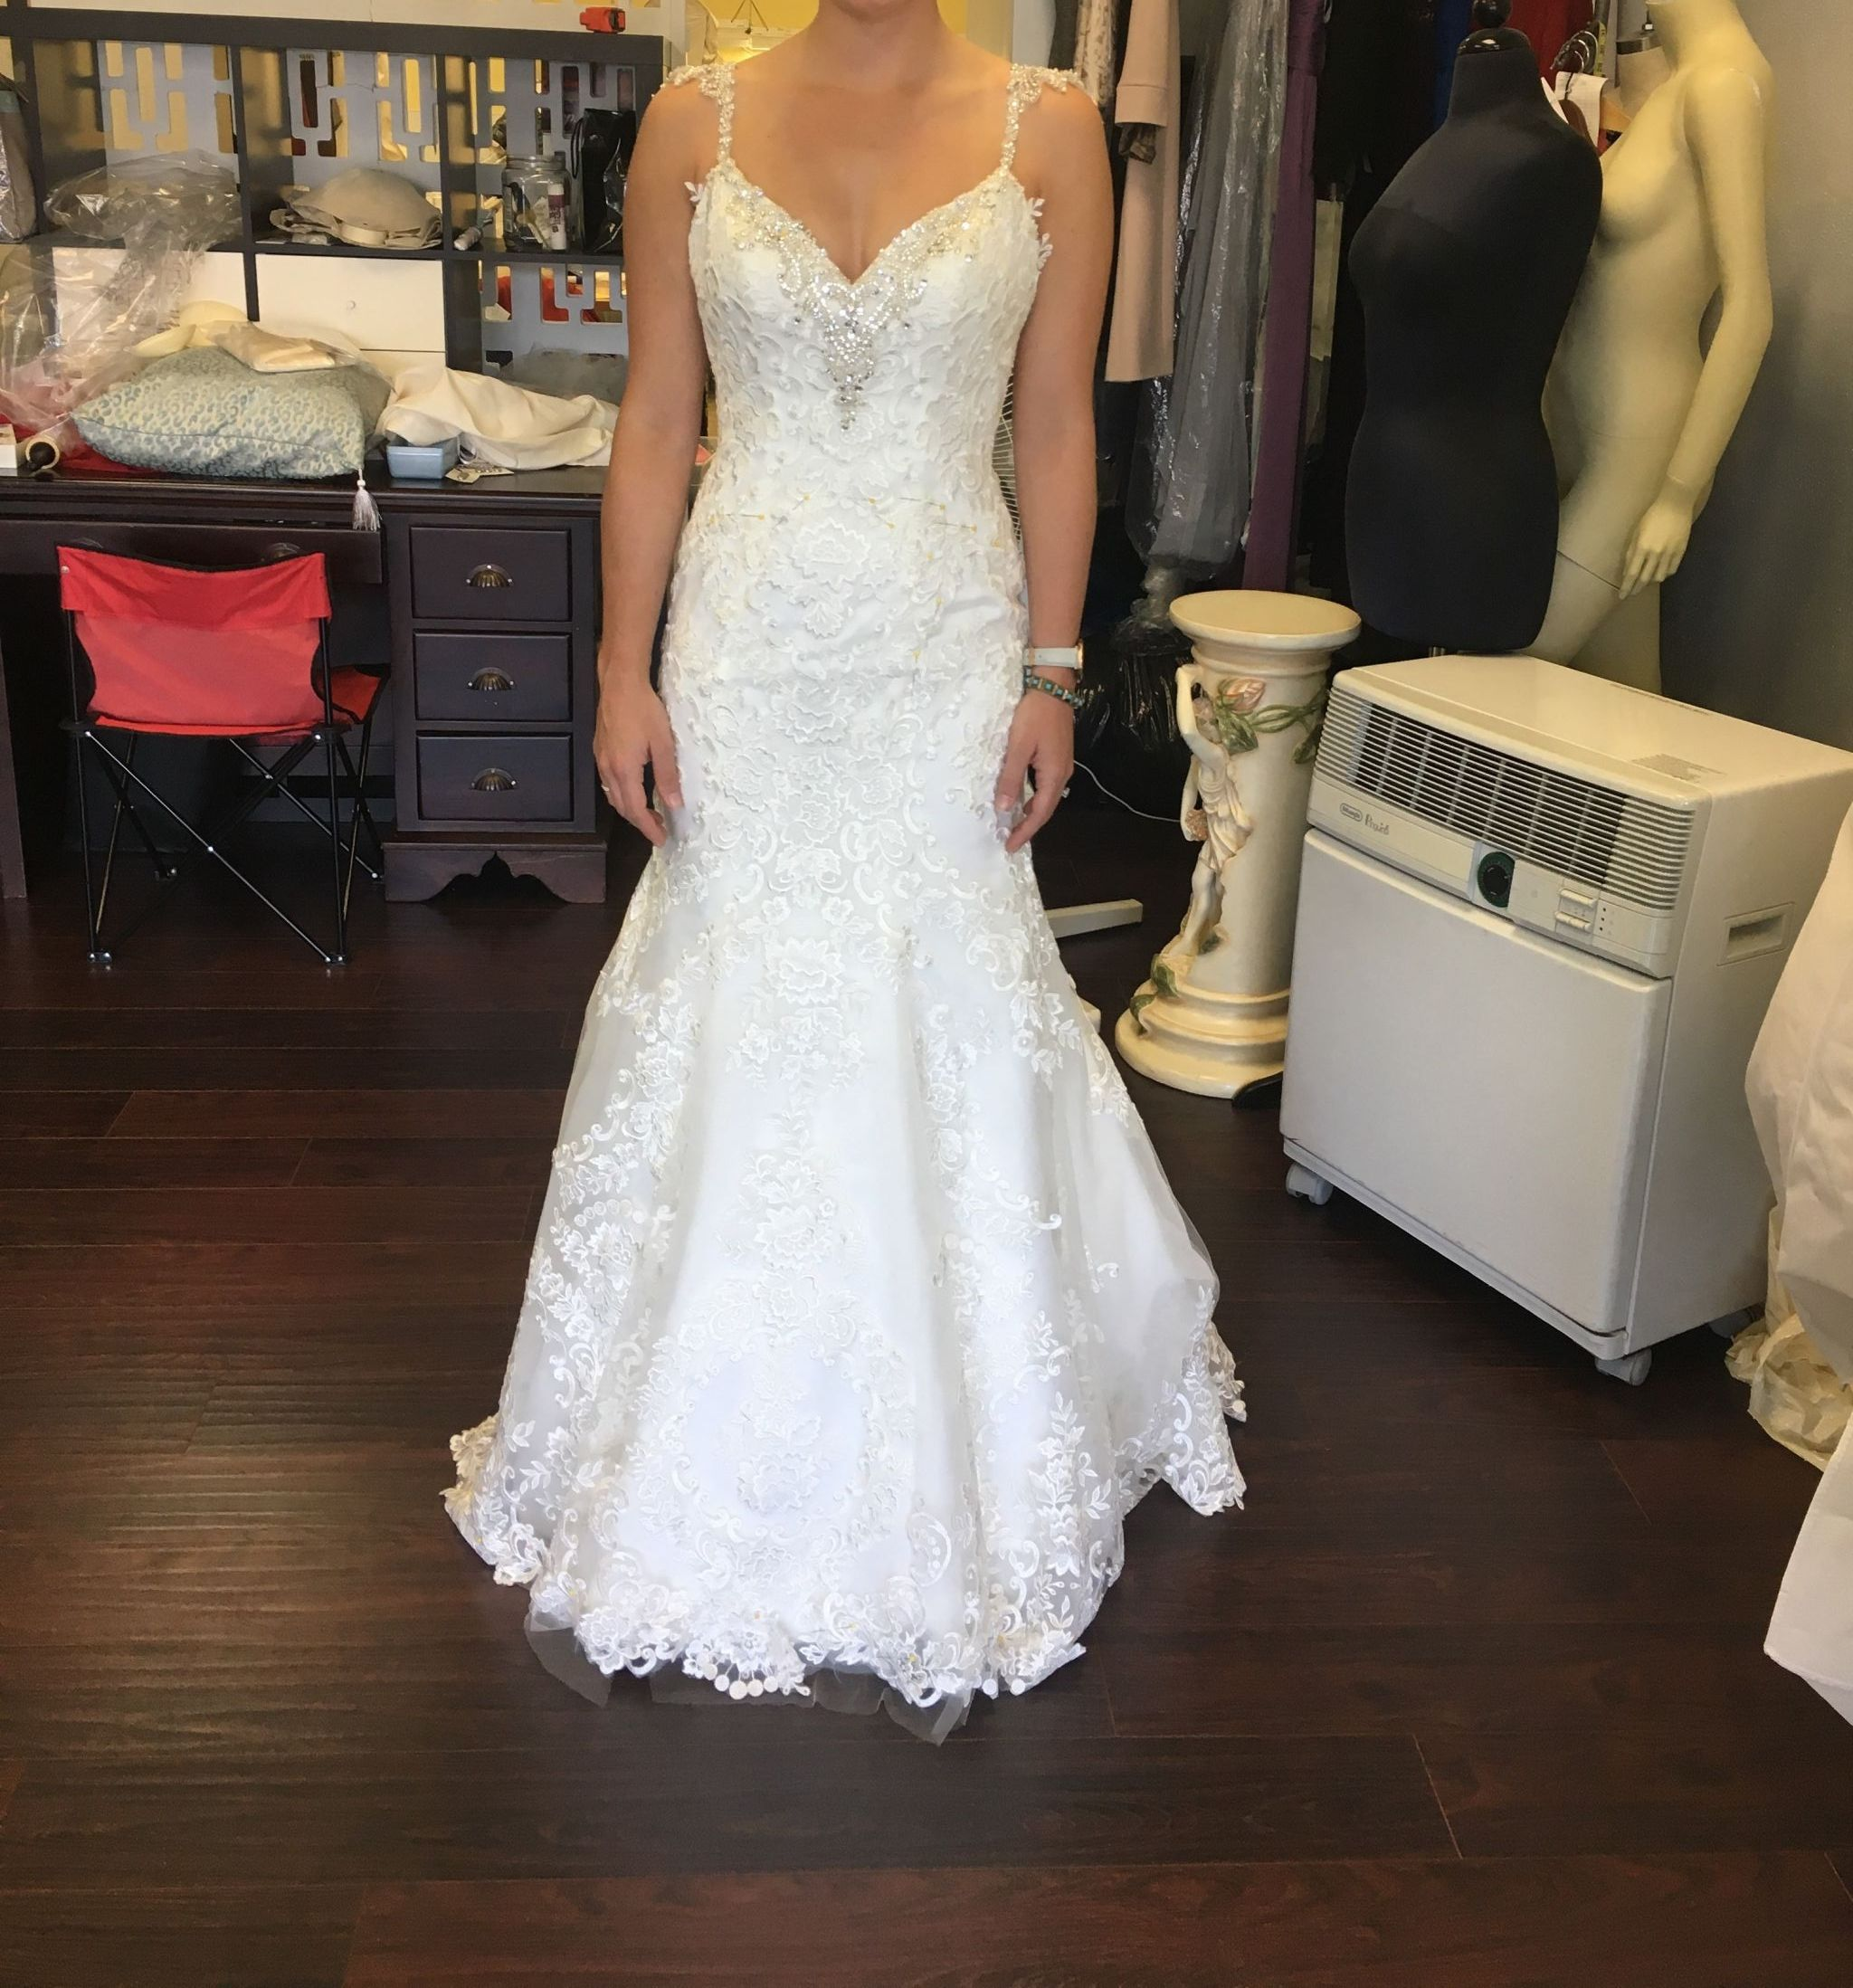 Used wedding dresses near me  Fiore Couture bpcharlotte ivwhivcsmrivgd  Size